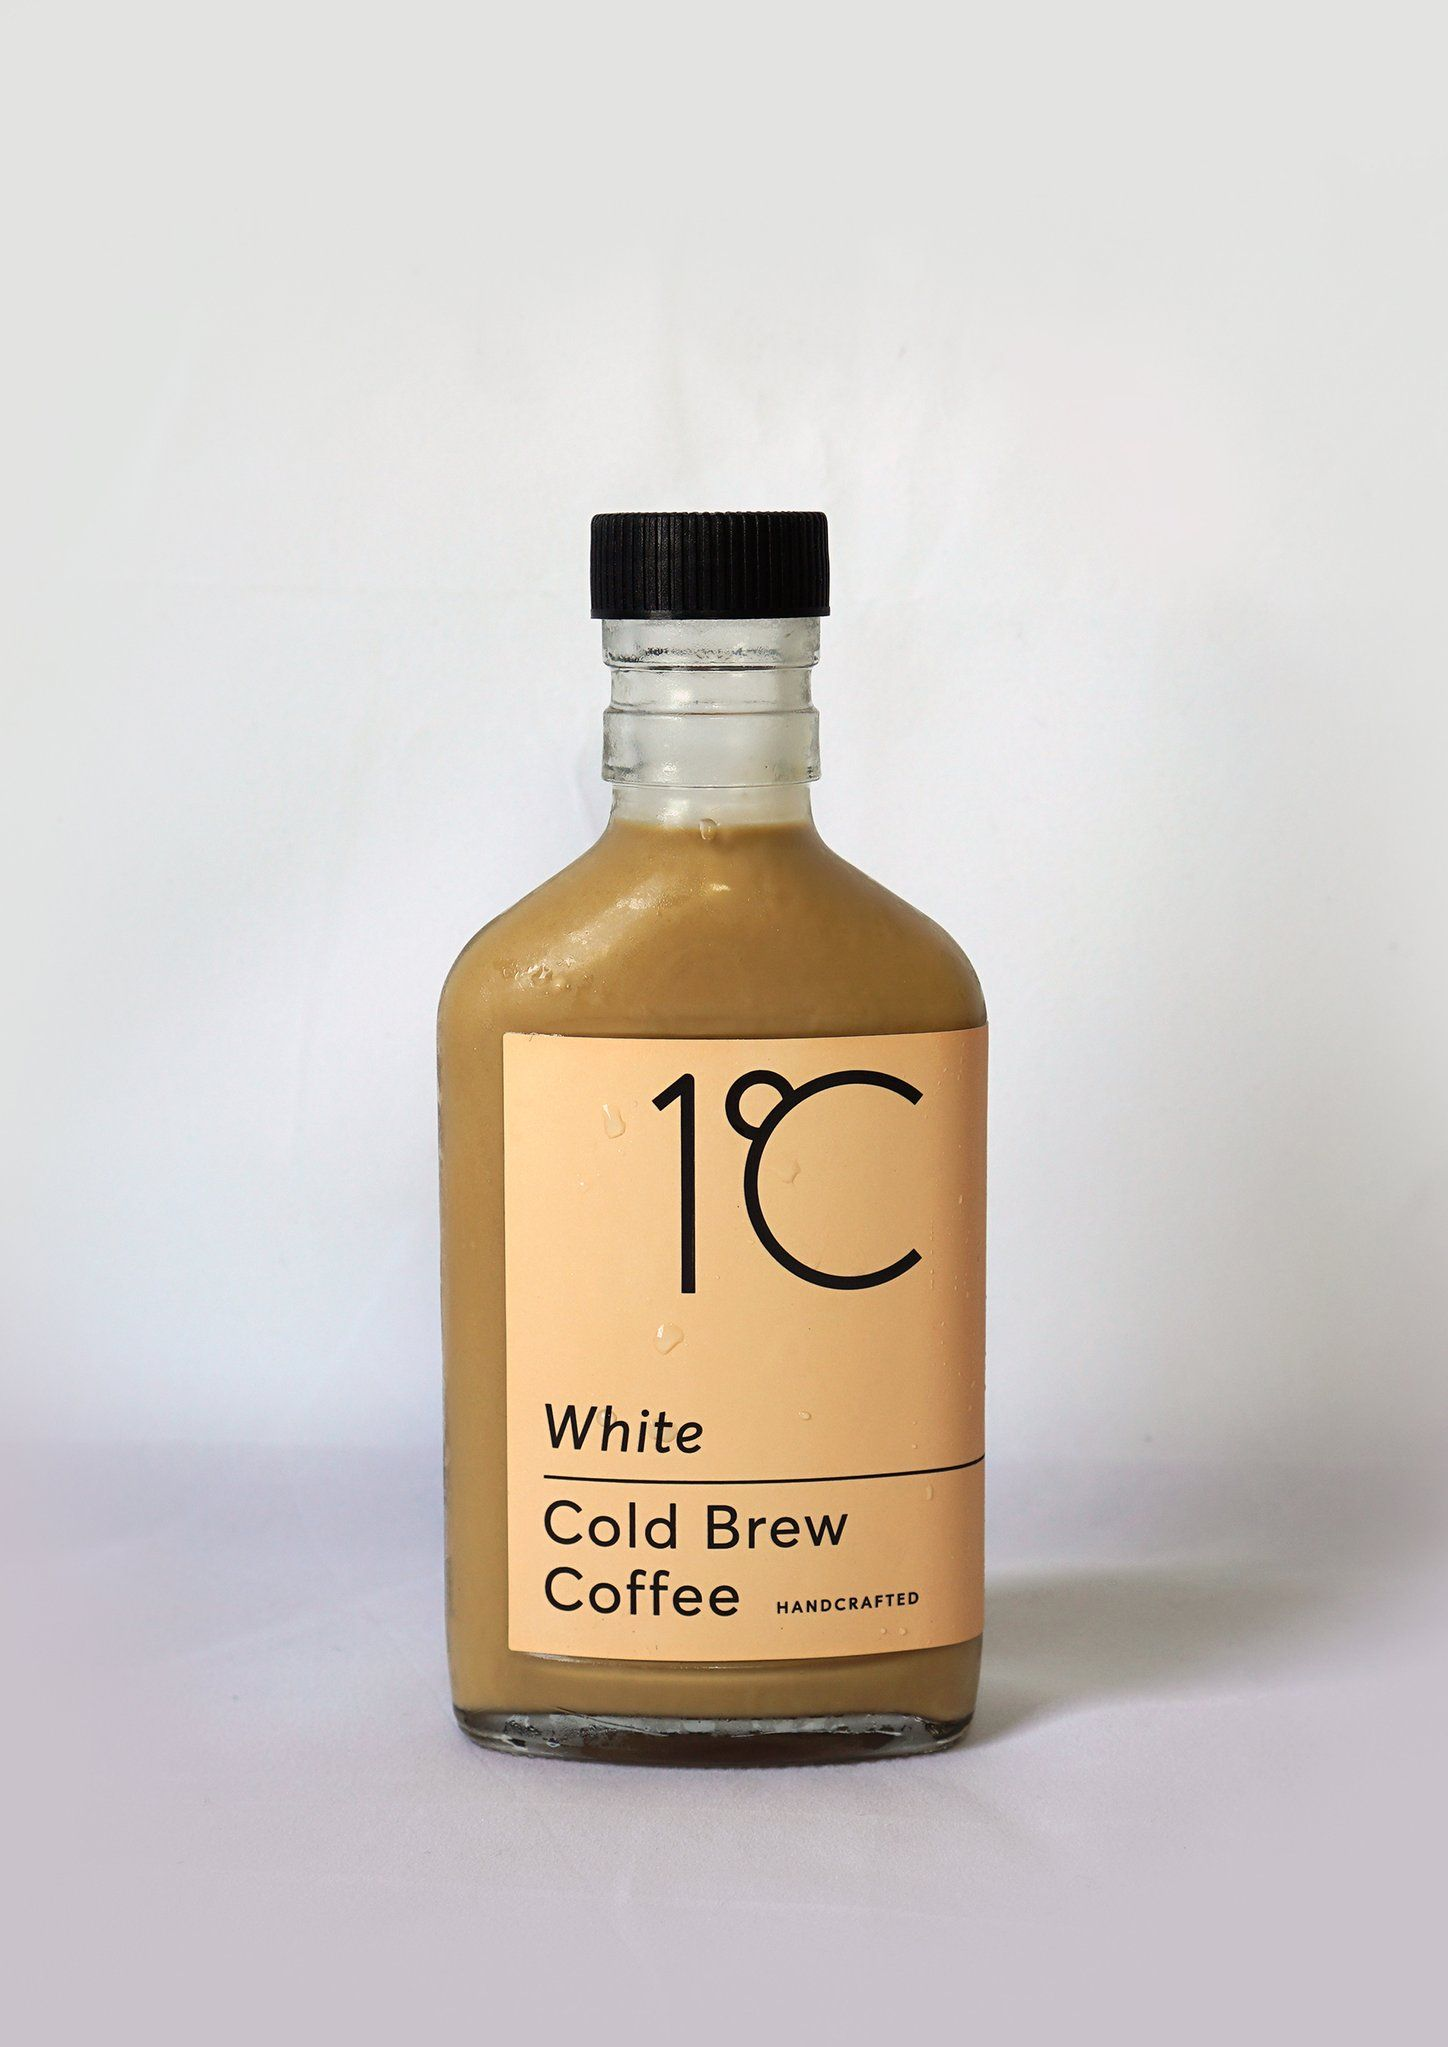 White Cold Brew Coffee 1degreec Cold Brew Coffee Cold Tea Handcrafted And Brewed In Singapore Cold Brew Coffee Cold Brew Coffee Brewing